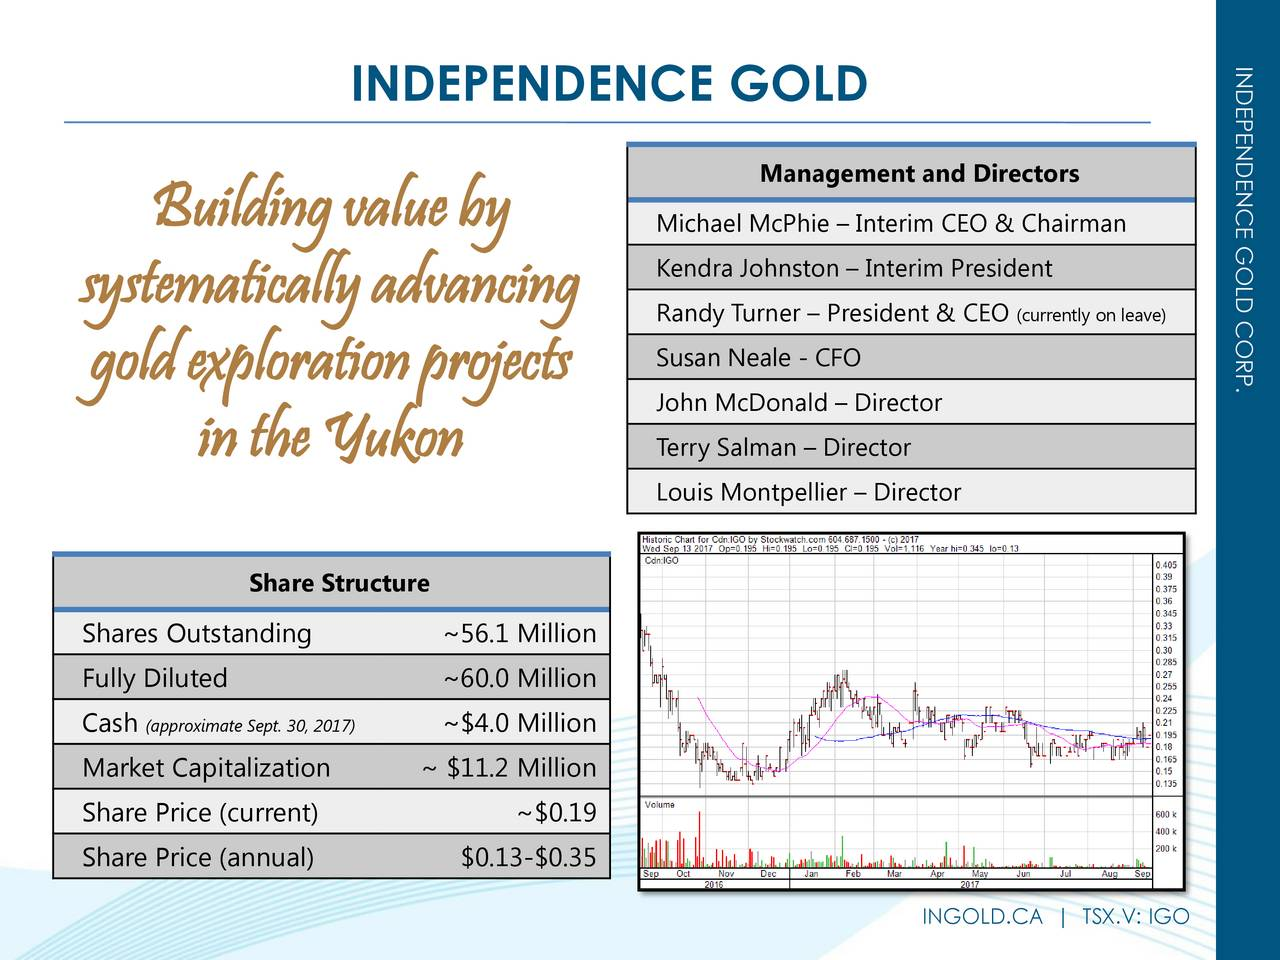 INDEPENDENCE GOLD Management and Directors Buildingvalueby Michael McPhie  Interim CEO & Chairman Kendra Johnston  Interim President systematicallyadvancing Randy Turner  President & (currently on leave) goldexplorationprojects Susan Neale - CFO John McDonald  Director intheYukon Terry Salman  Director Louis Montpellier  Director Share Structure Shares Outstanding ~56.1 Million Fully Diluted ~60.0 Million Cash (approximate Sept. 30,~$4.0 Million Market Capitalization ~ $11.2 Million Share Price (current) ~$0.19 Share Price (annual) $0.13-$0.35 INGOLD.CA | TSX.V: IGO